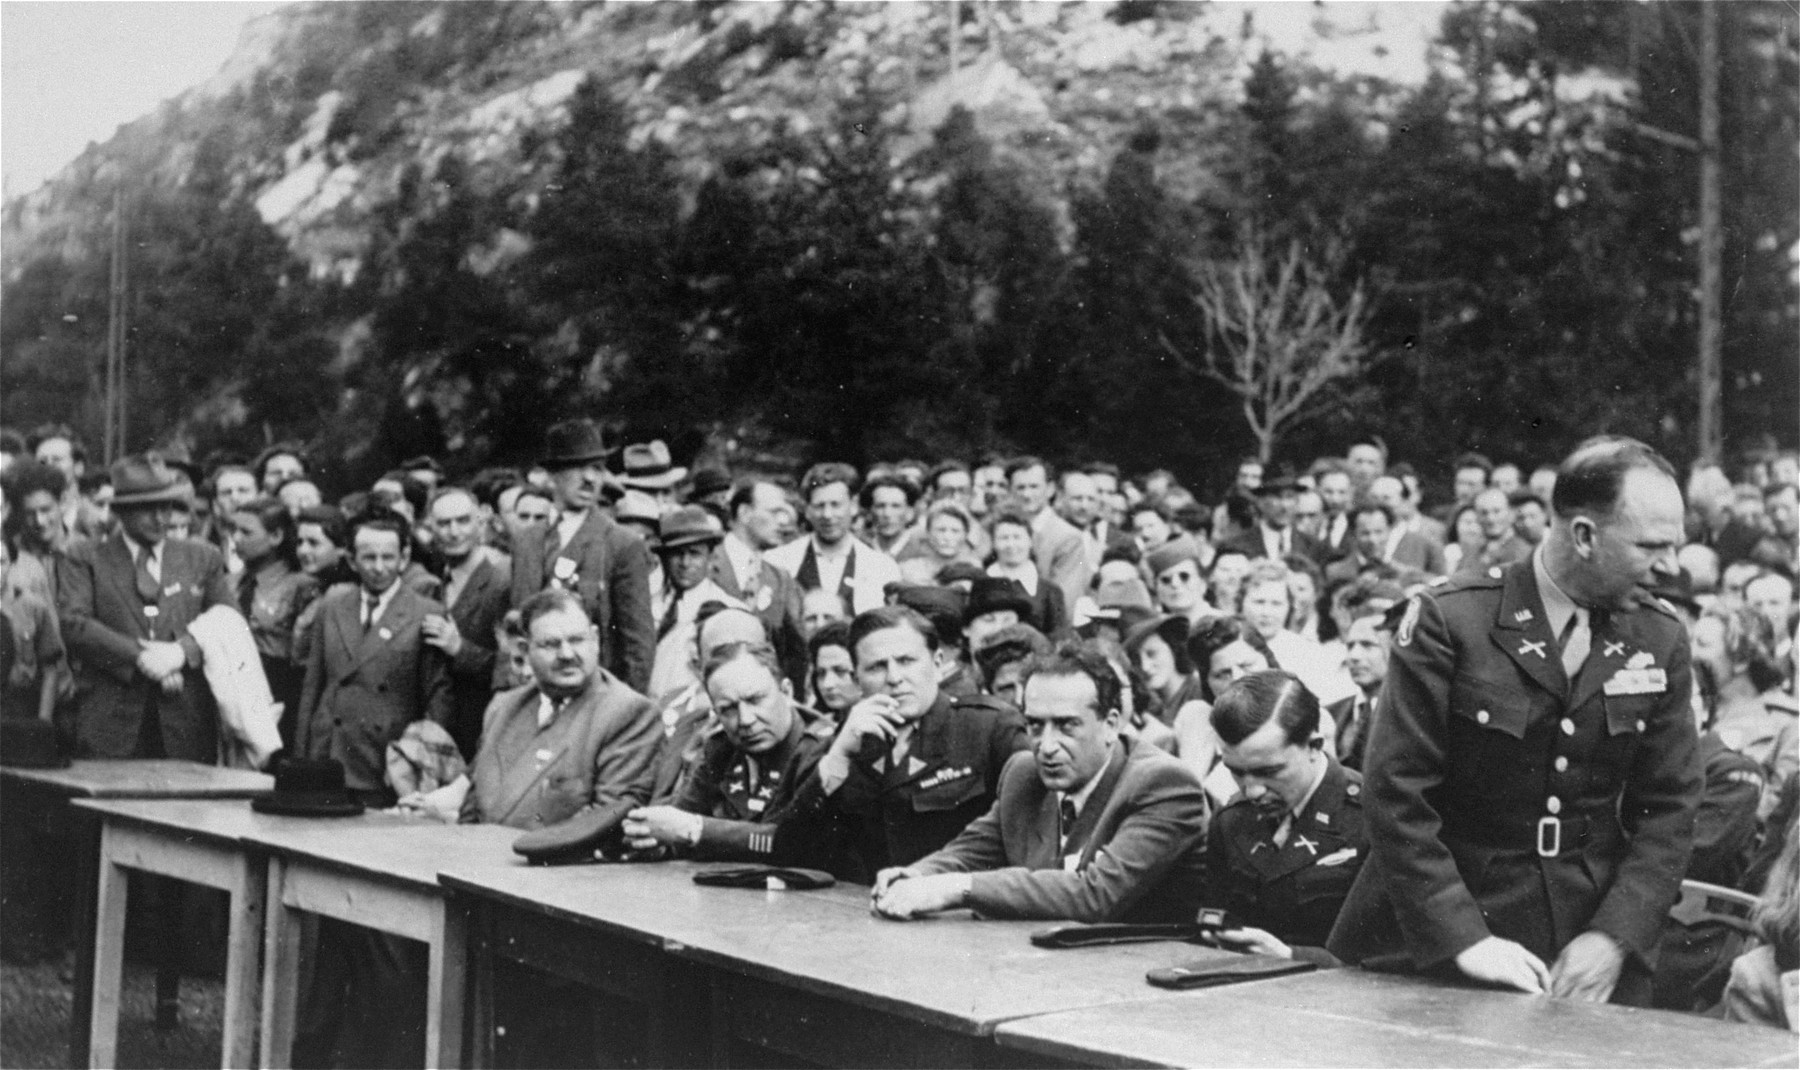 American and German officials participate at an outdoor meeting of Jewish DPs in the American Zone of Germany held in the Mittenwald displaced persons camp to commemorate the death march from Dachau to Tyrol.